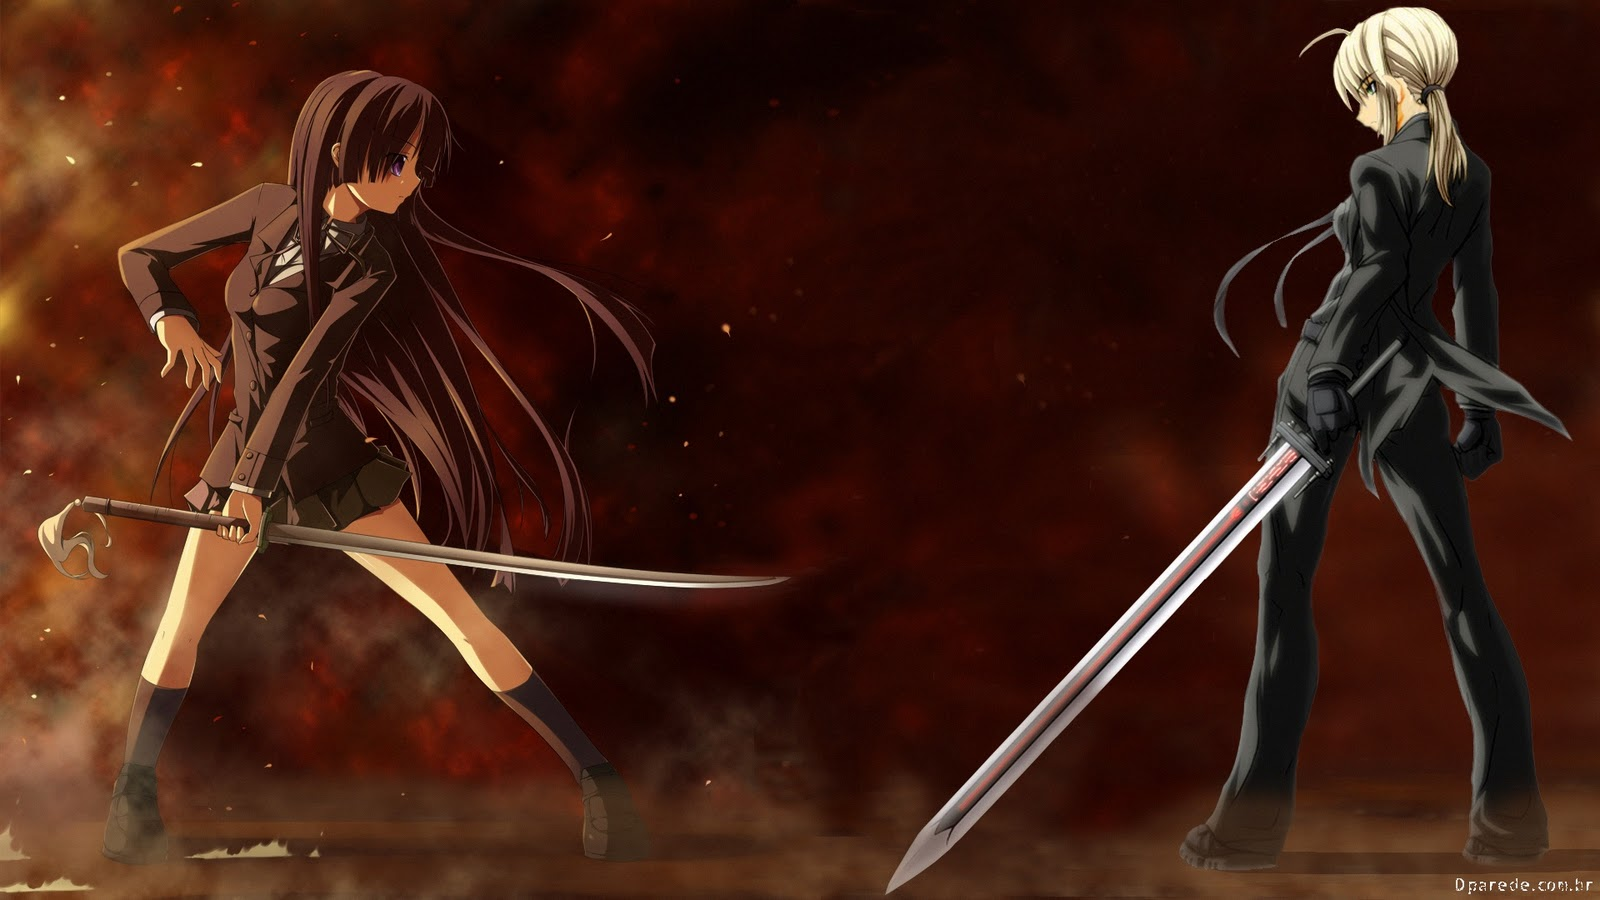 image 5297 1 other anime hd wallpapers anime girls fighting sword